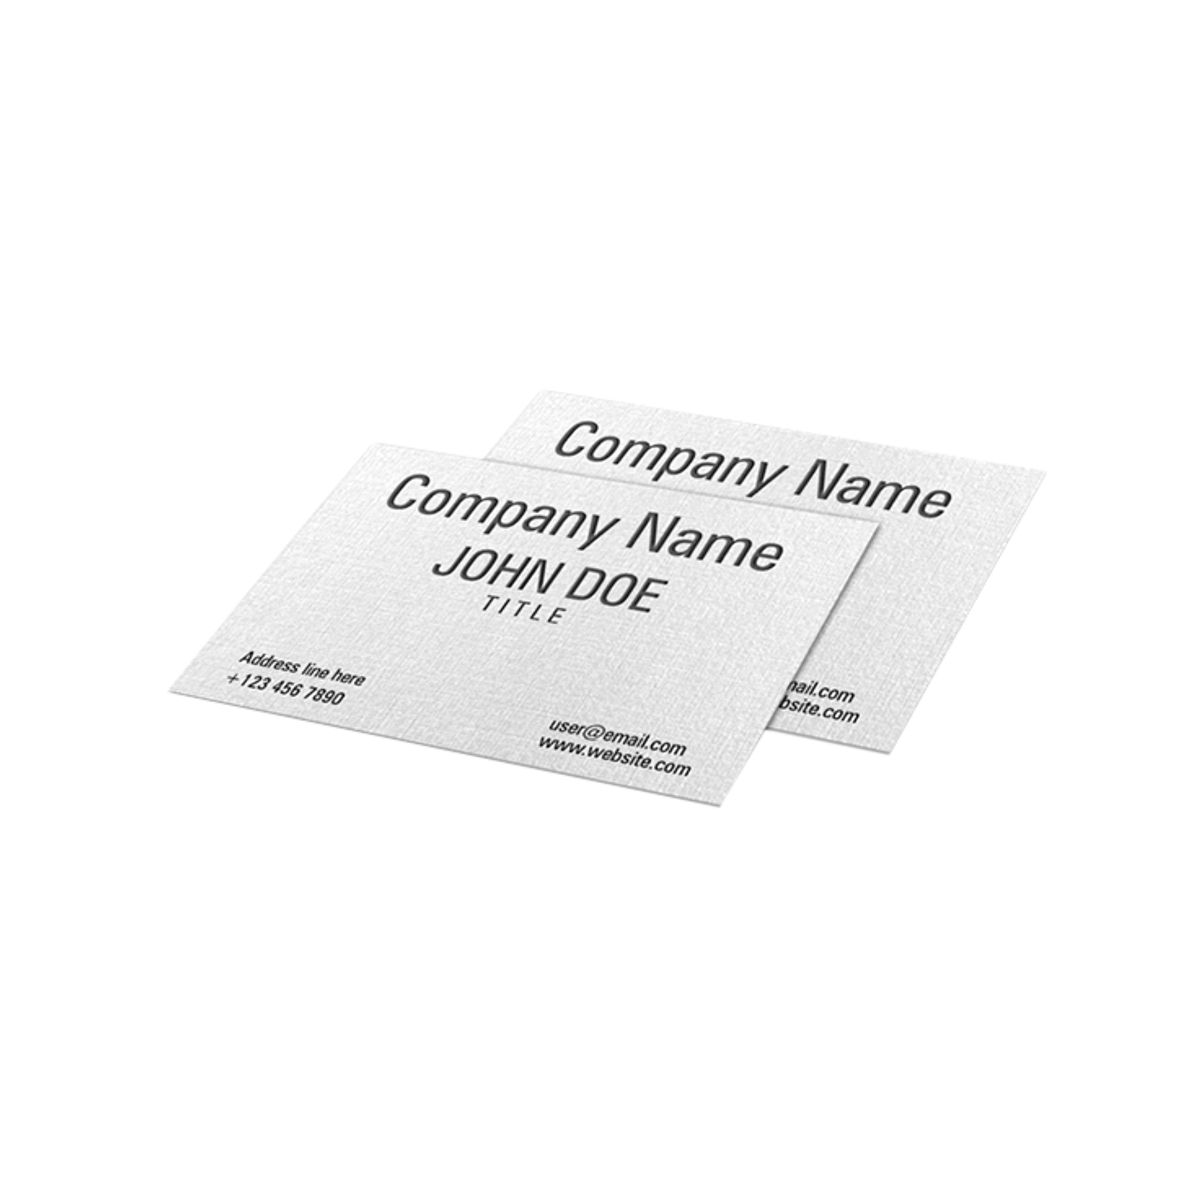 linen uncoated business card qualita print - Linen Business Cards